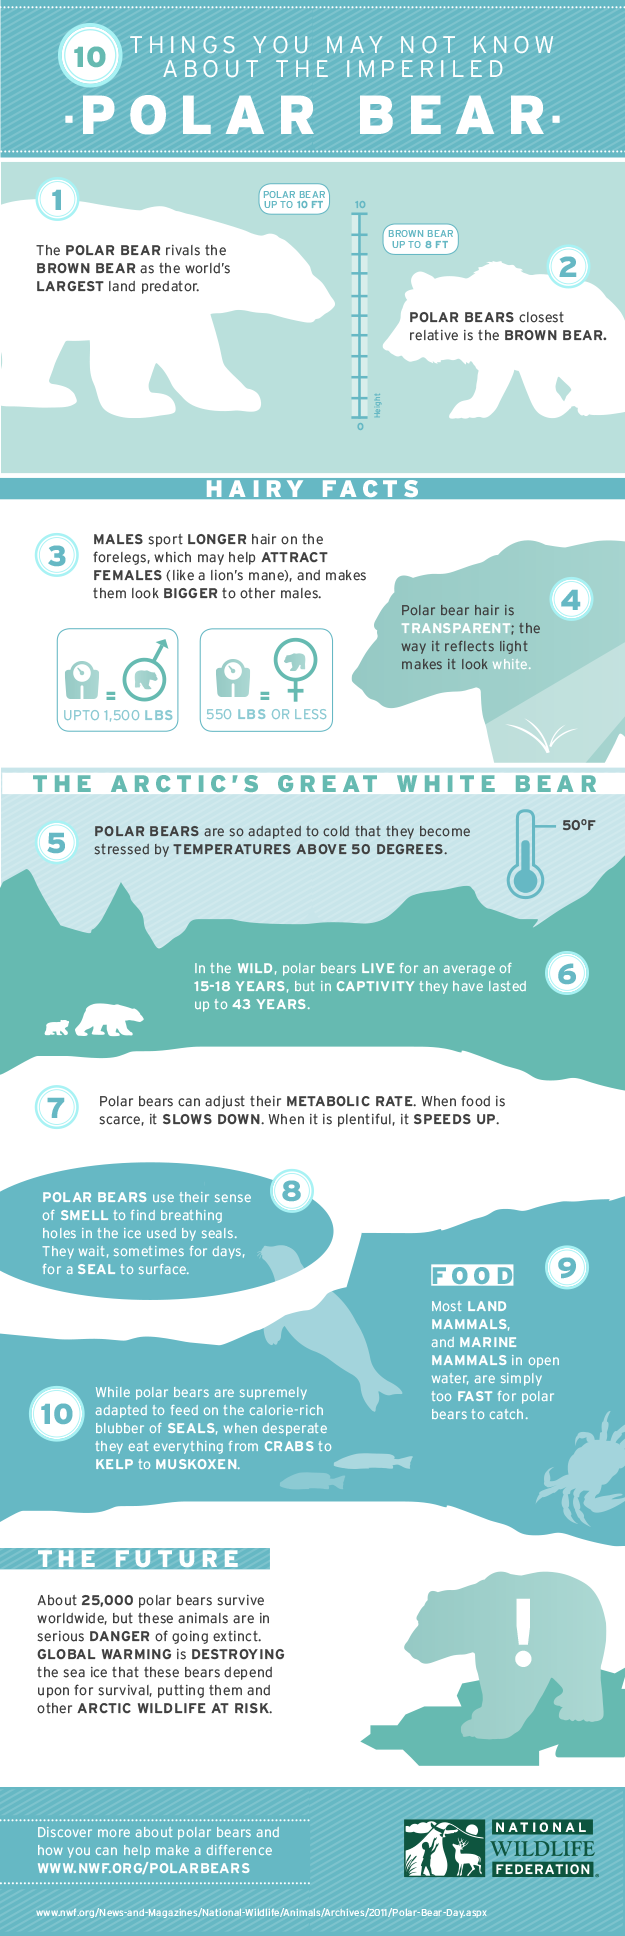 10 Things You May Not Know About Polar Bears Happy Polar